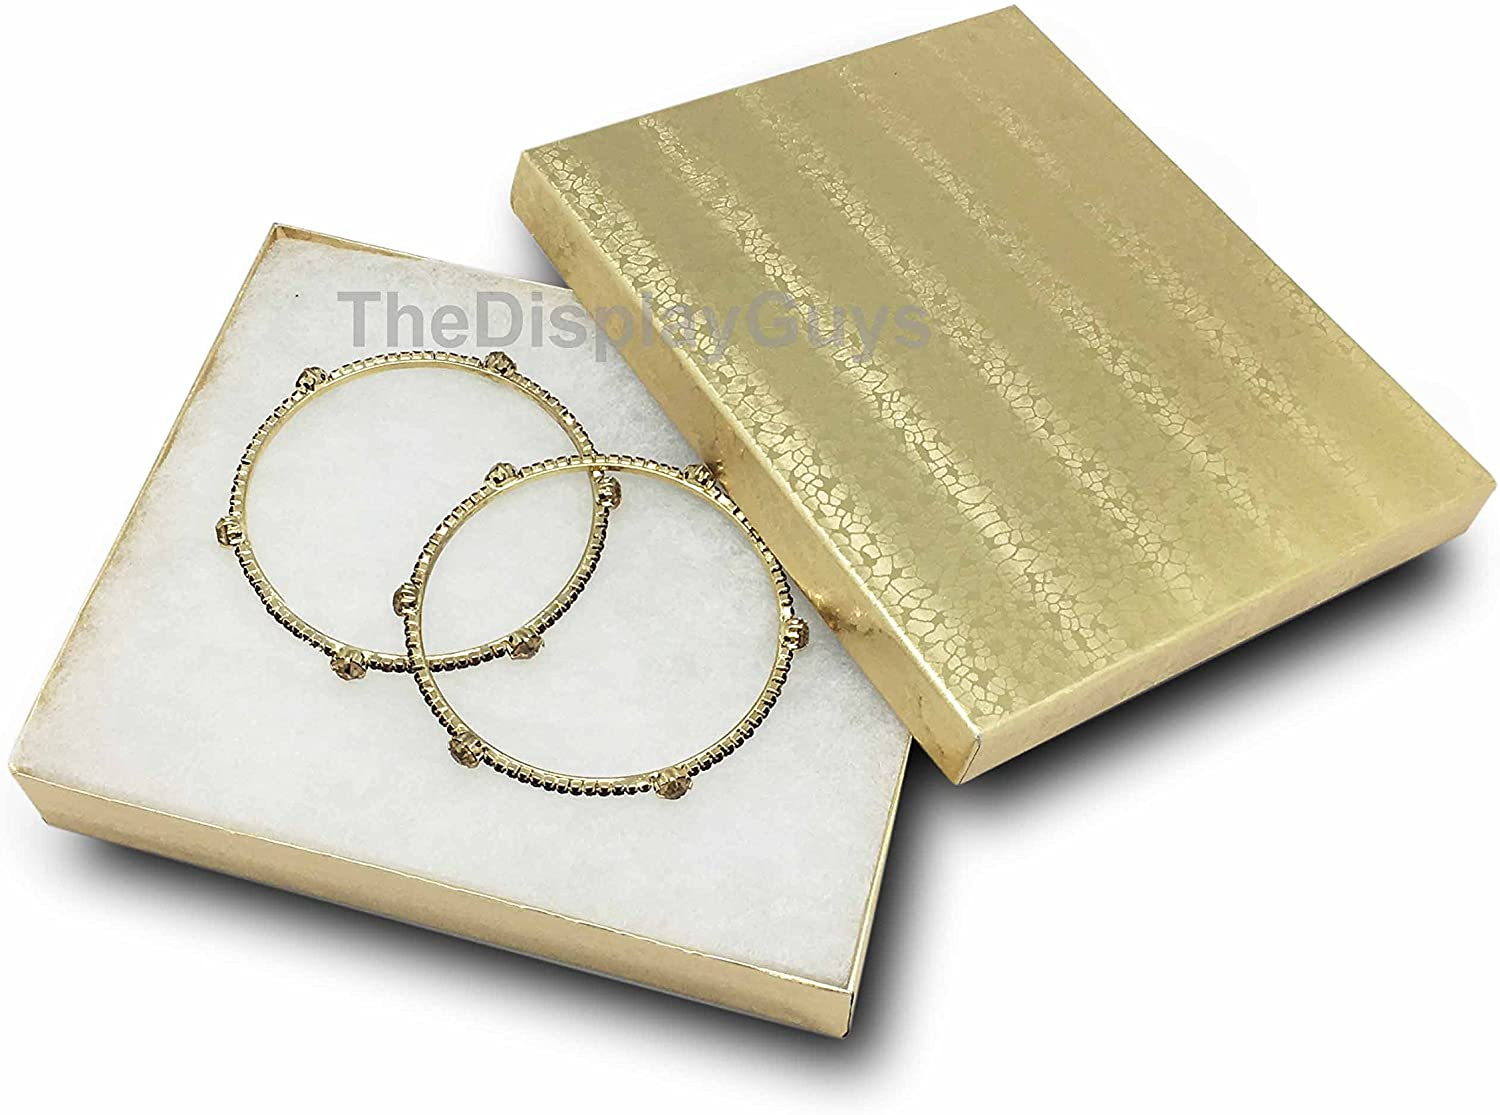 TheDisplayGuys 25-Pack #65 Cotton Filled Cardboard Paper Jewelry Box Gift Case - Gold Foil (6 3/16